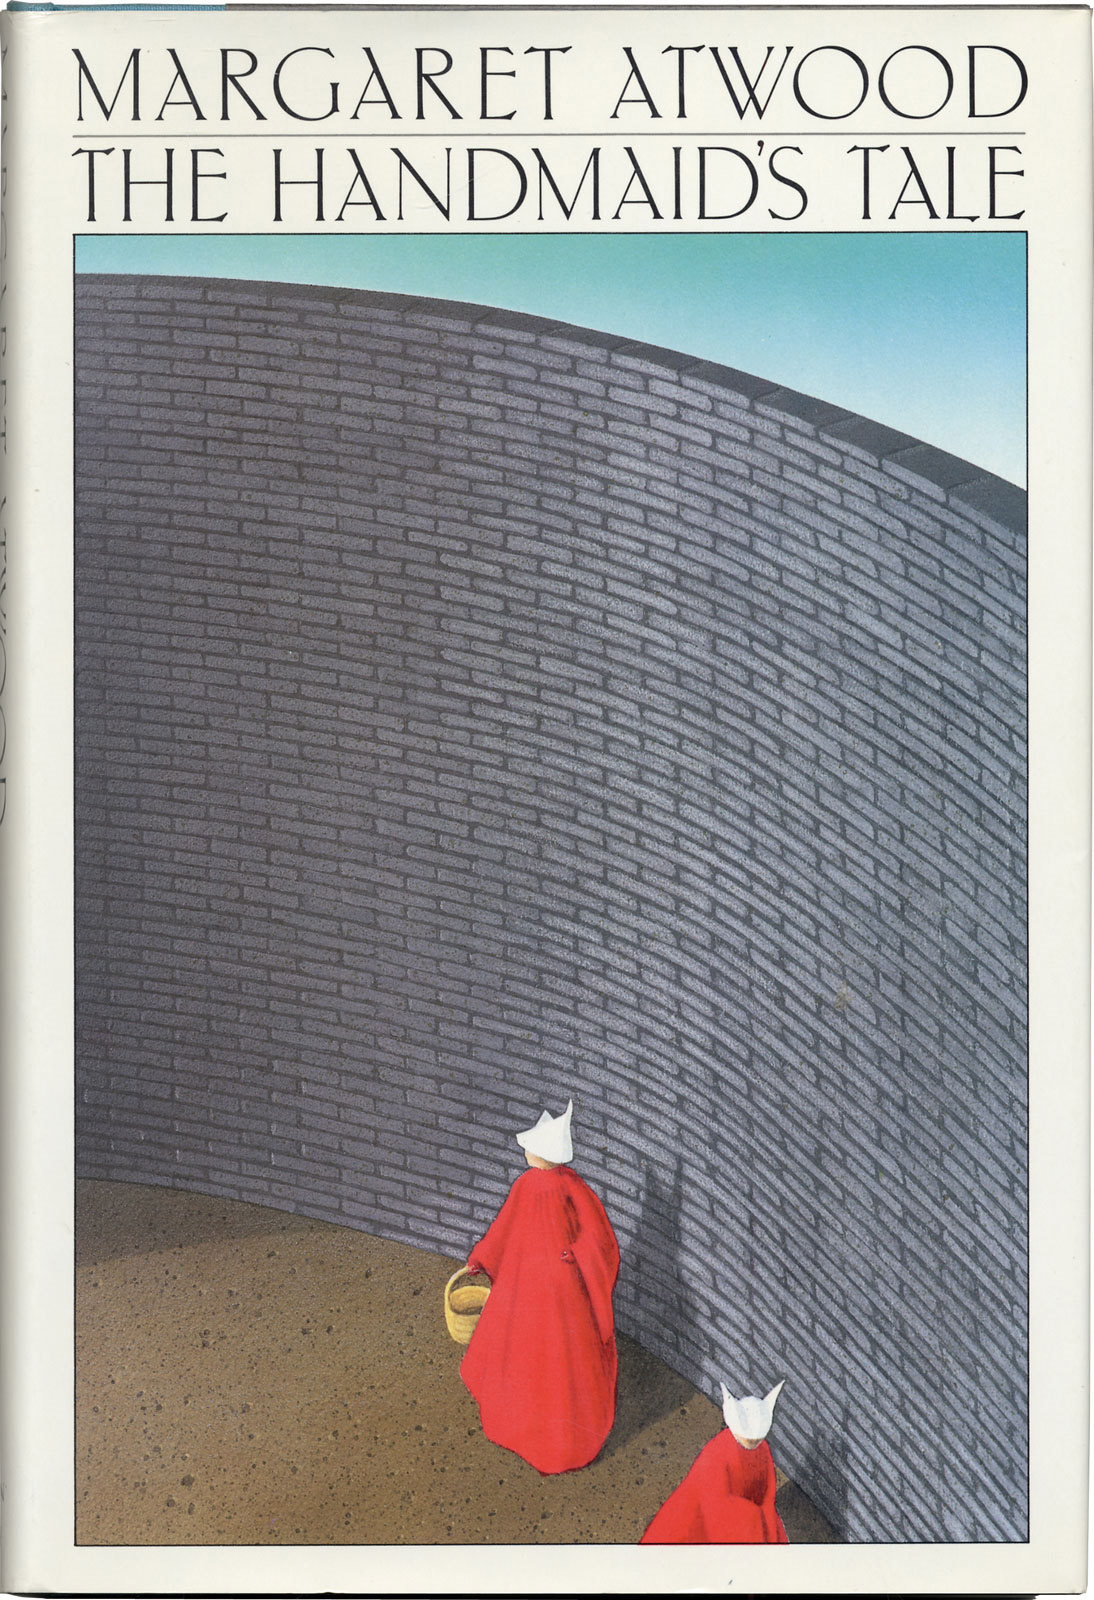 Lily oak books the handmaid 39 s tale by margaret atwood for The atwood